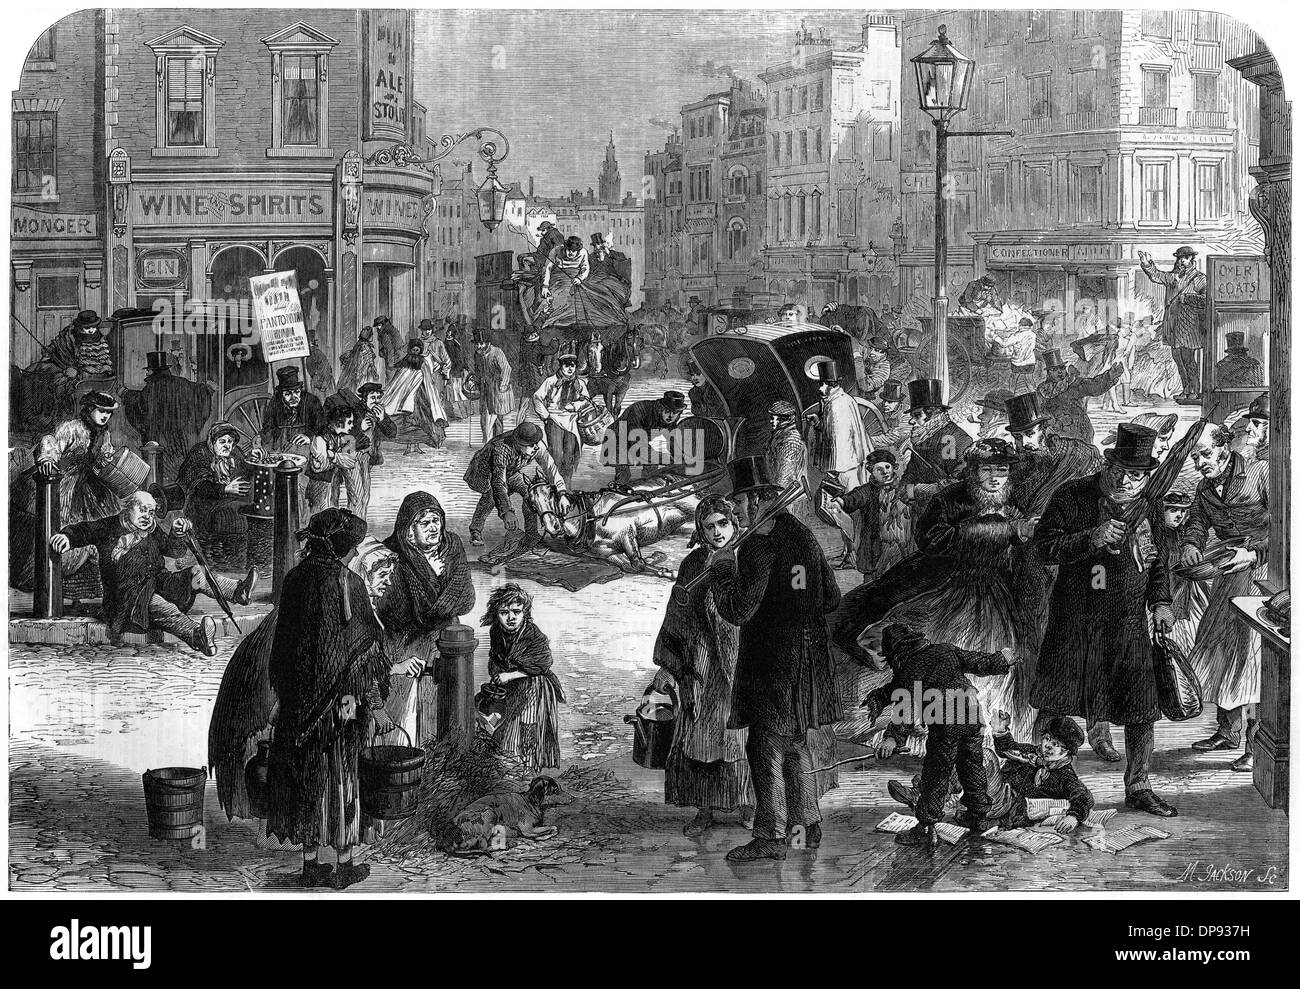 Frost in London, 19th century Stock Photo